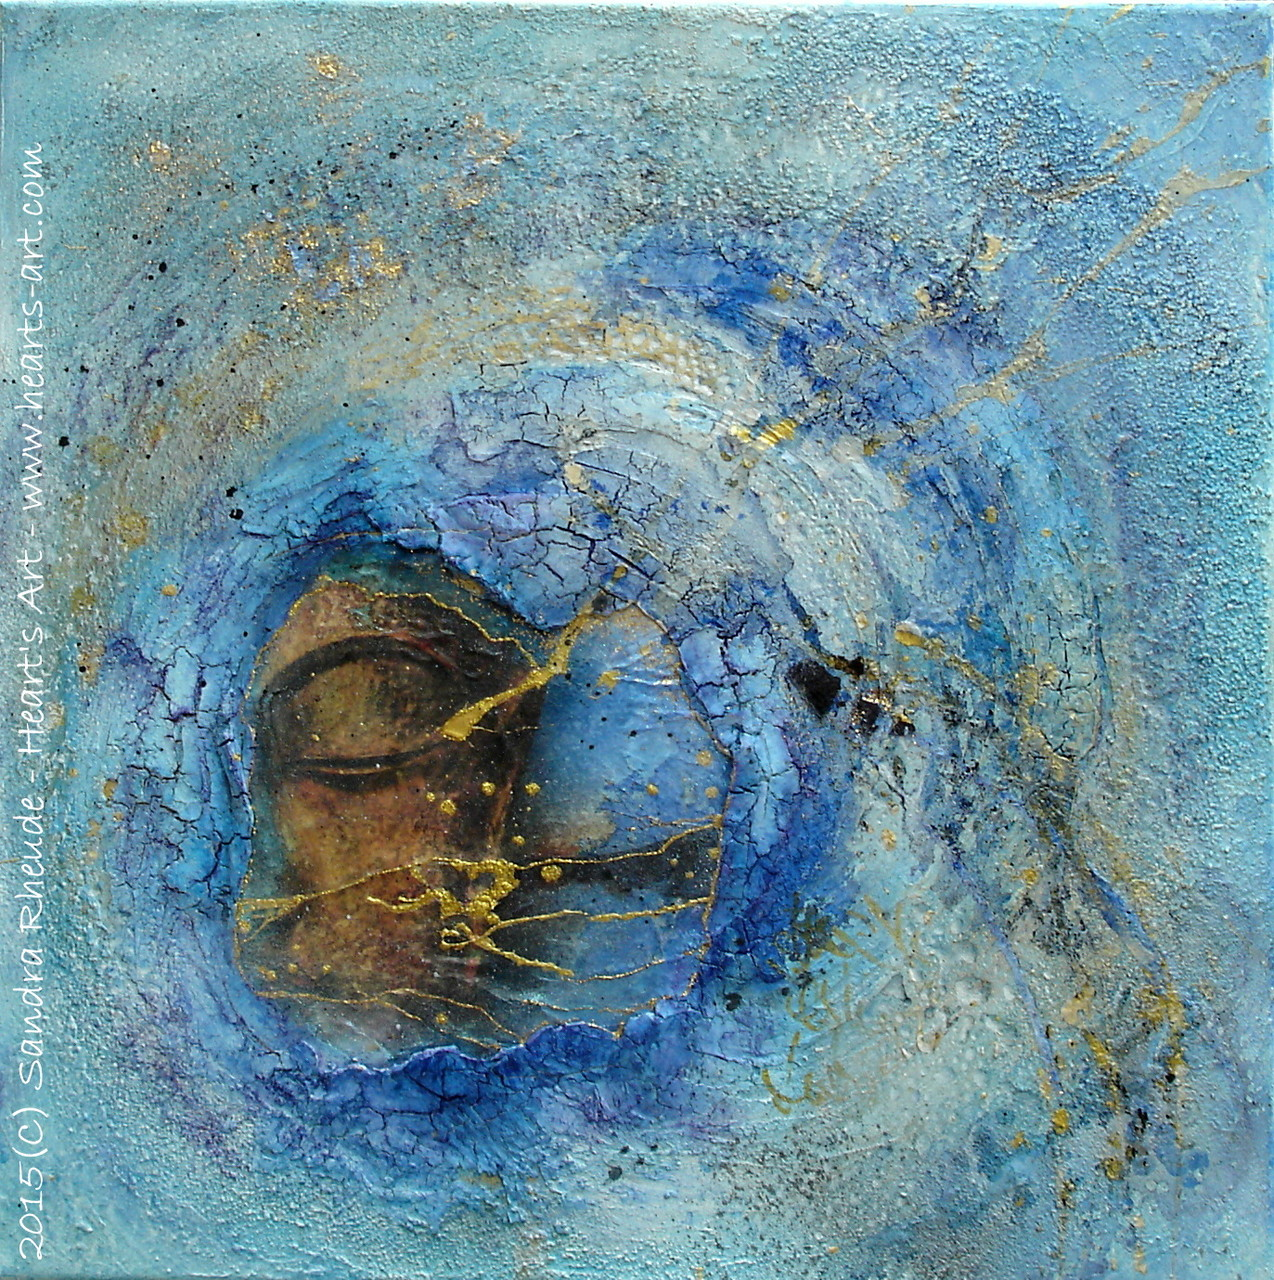 'Auge des Sturms/Eye of the Storm' - 2015/19 - Acryl/MixedMedia auf Leinwand - 50 x 50 cm - € 290